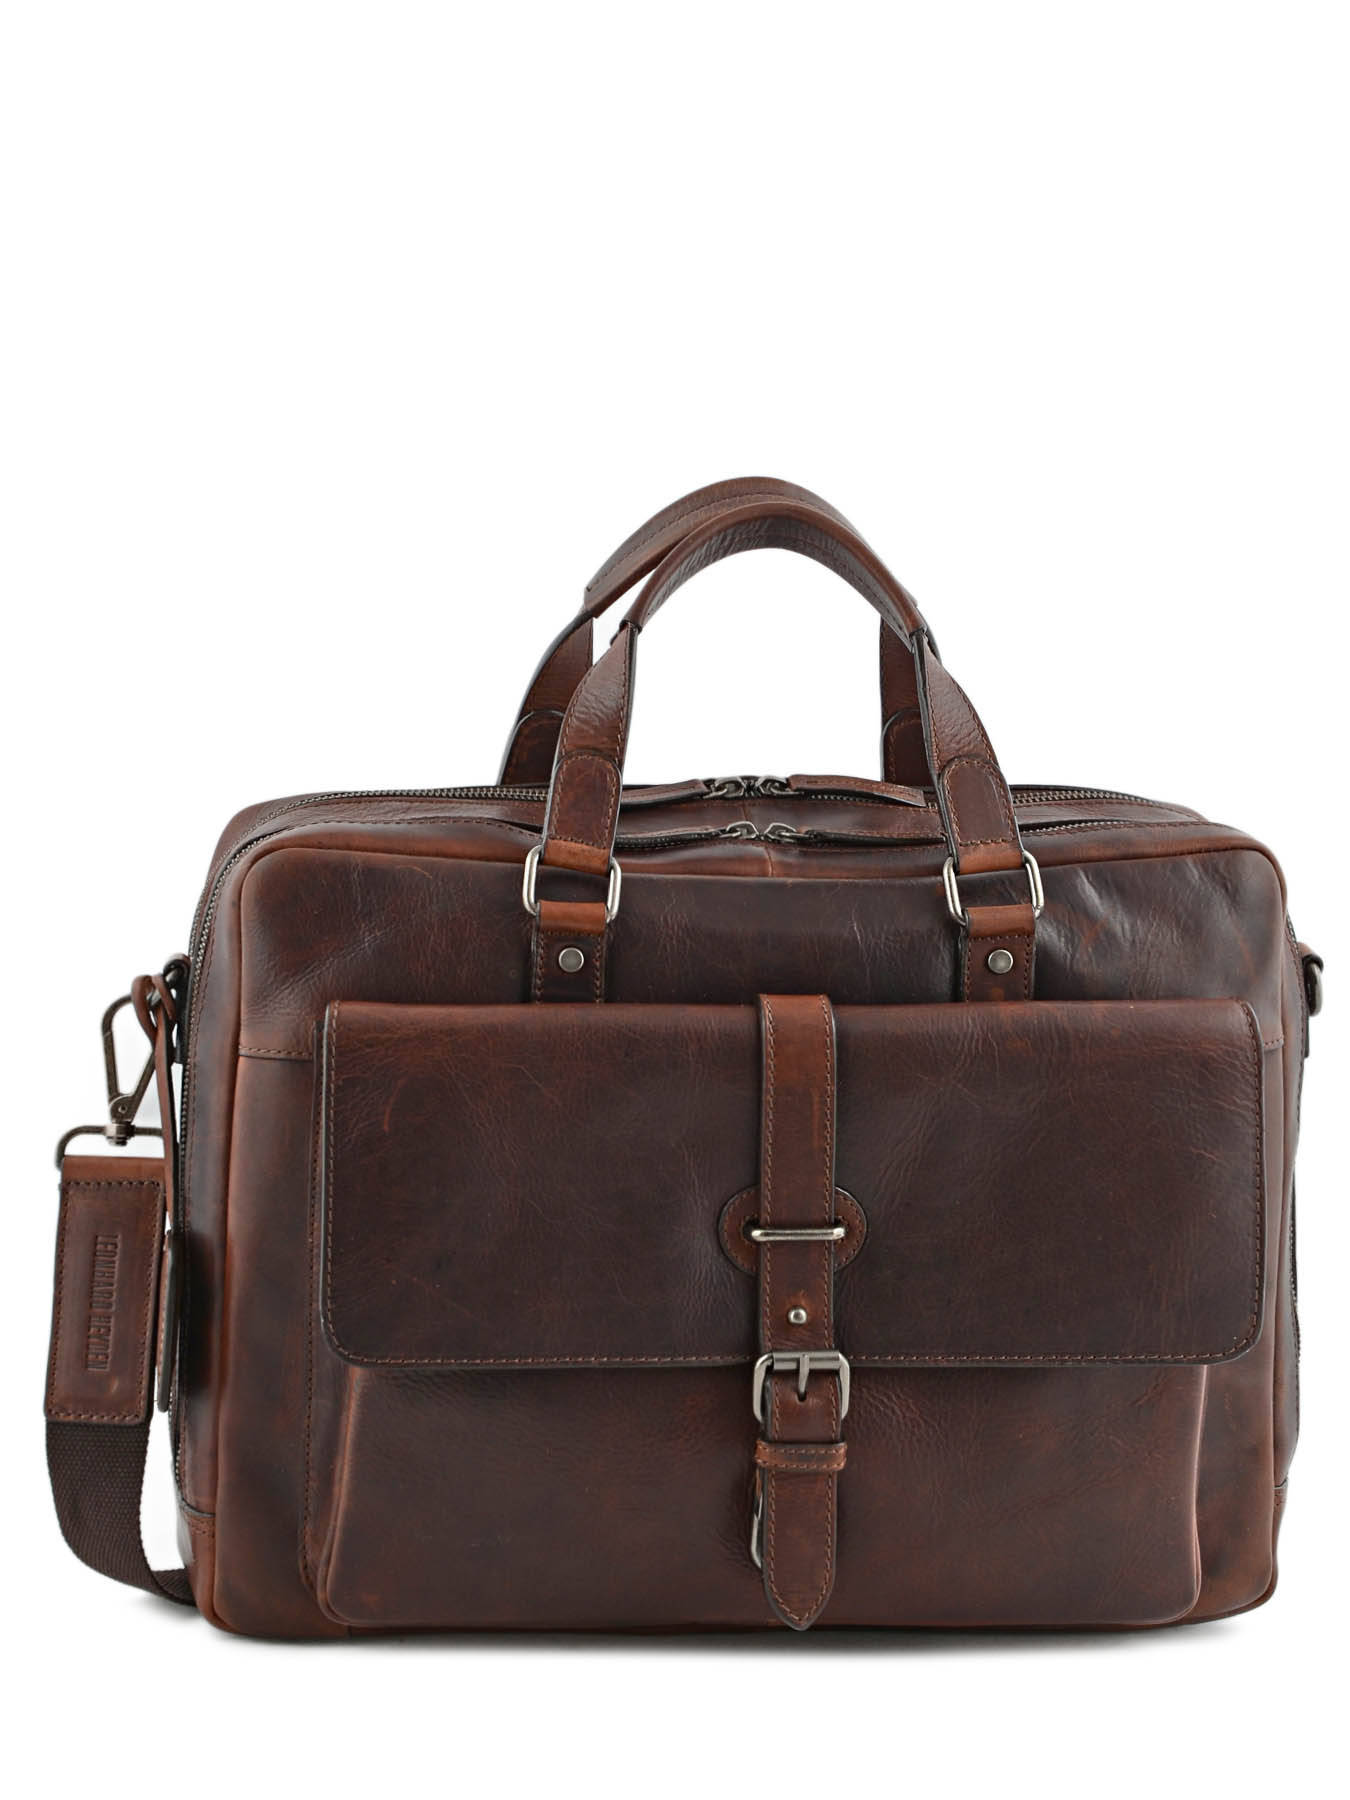 4a191b112b5bc Leonhard Heyden Briefcase 5370 - free shipping available